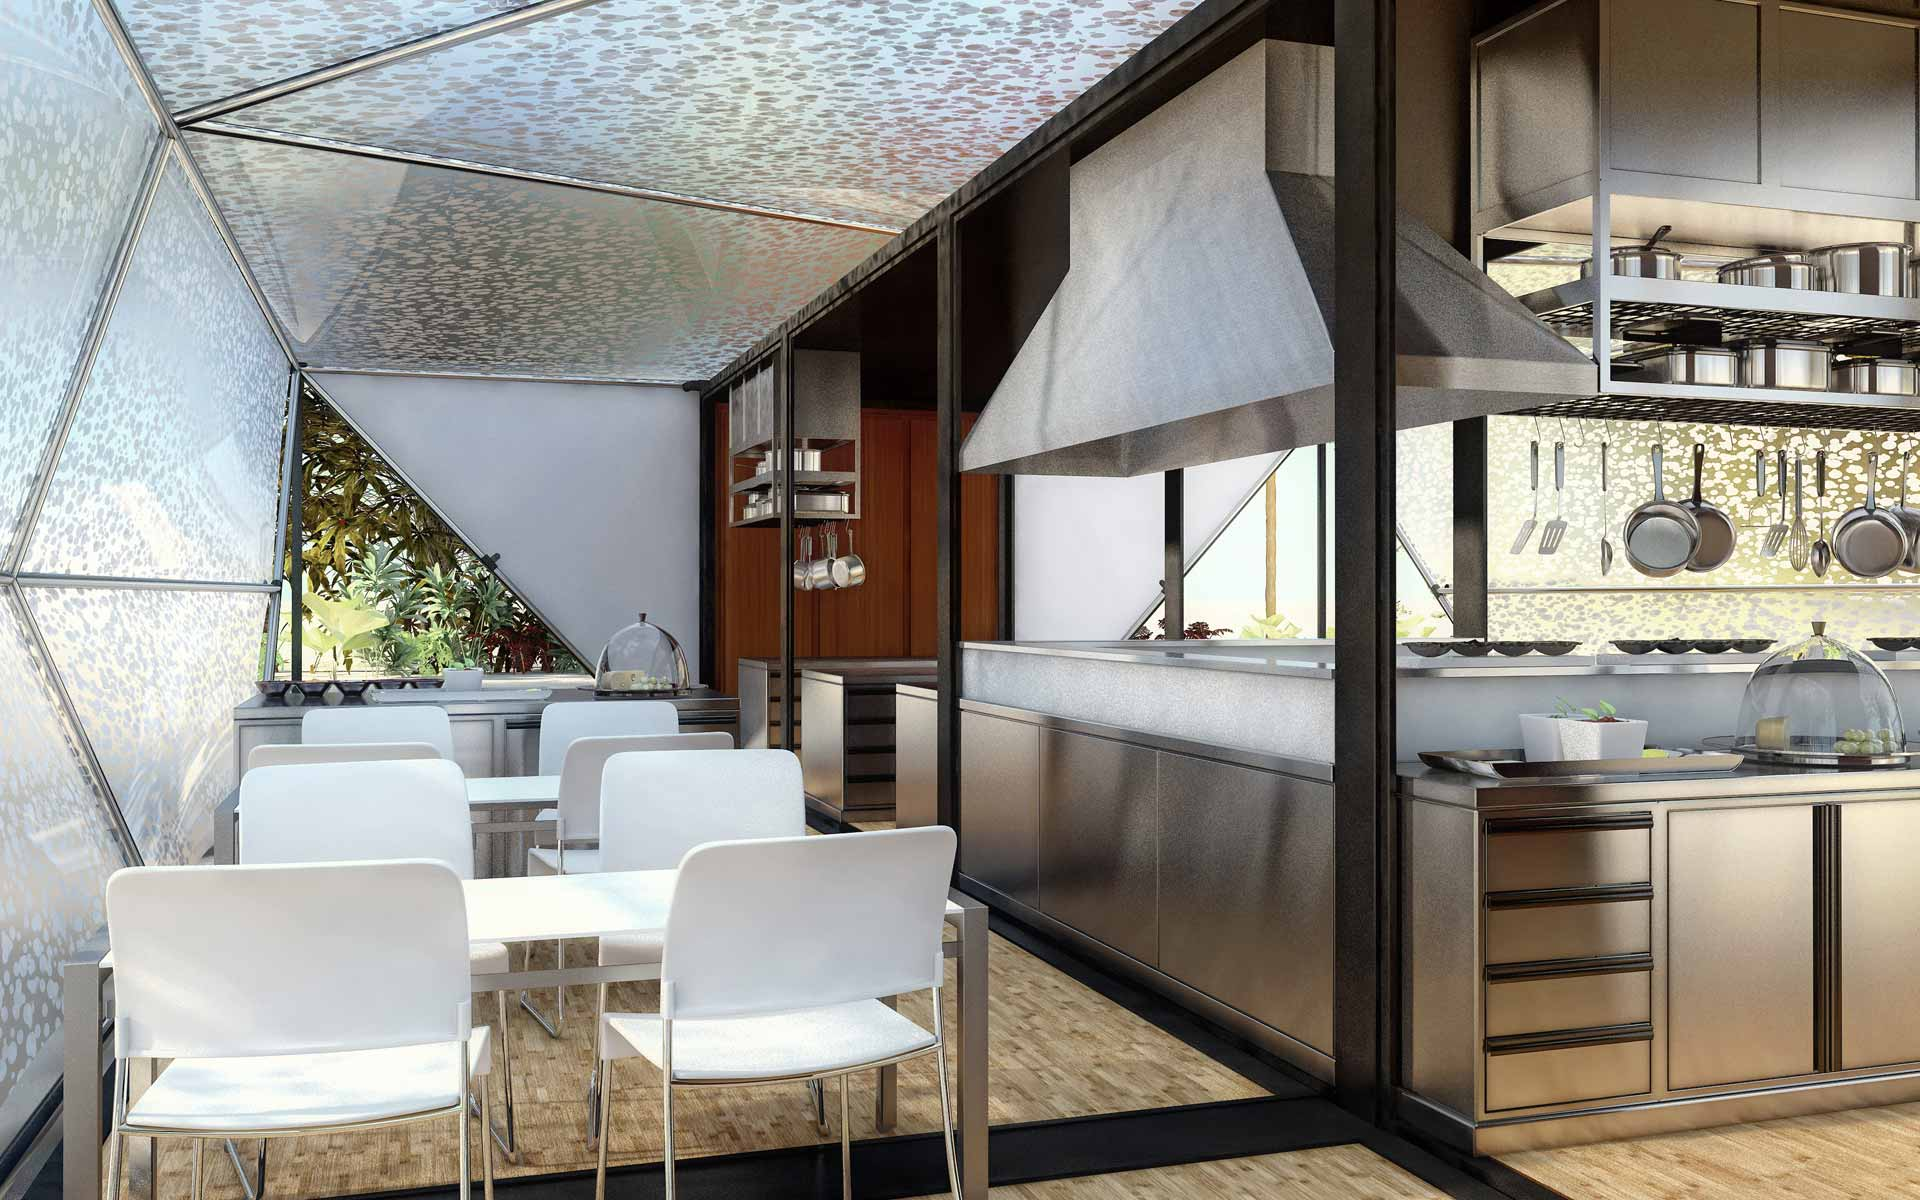 Removable architecture, interior container kitchen and staff dining room